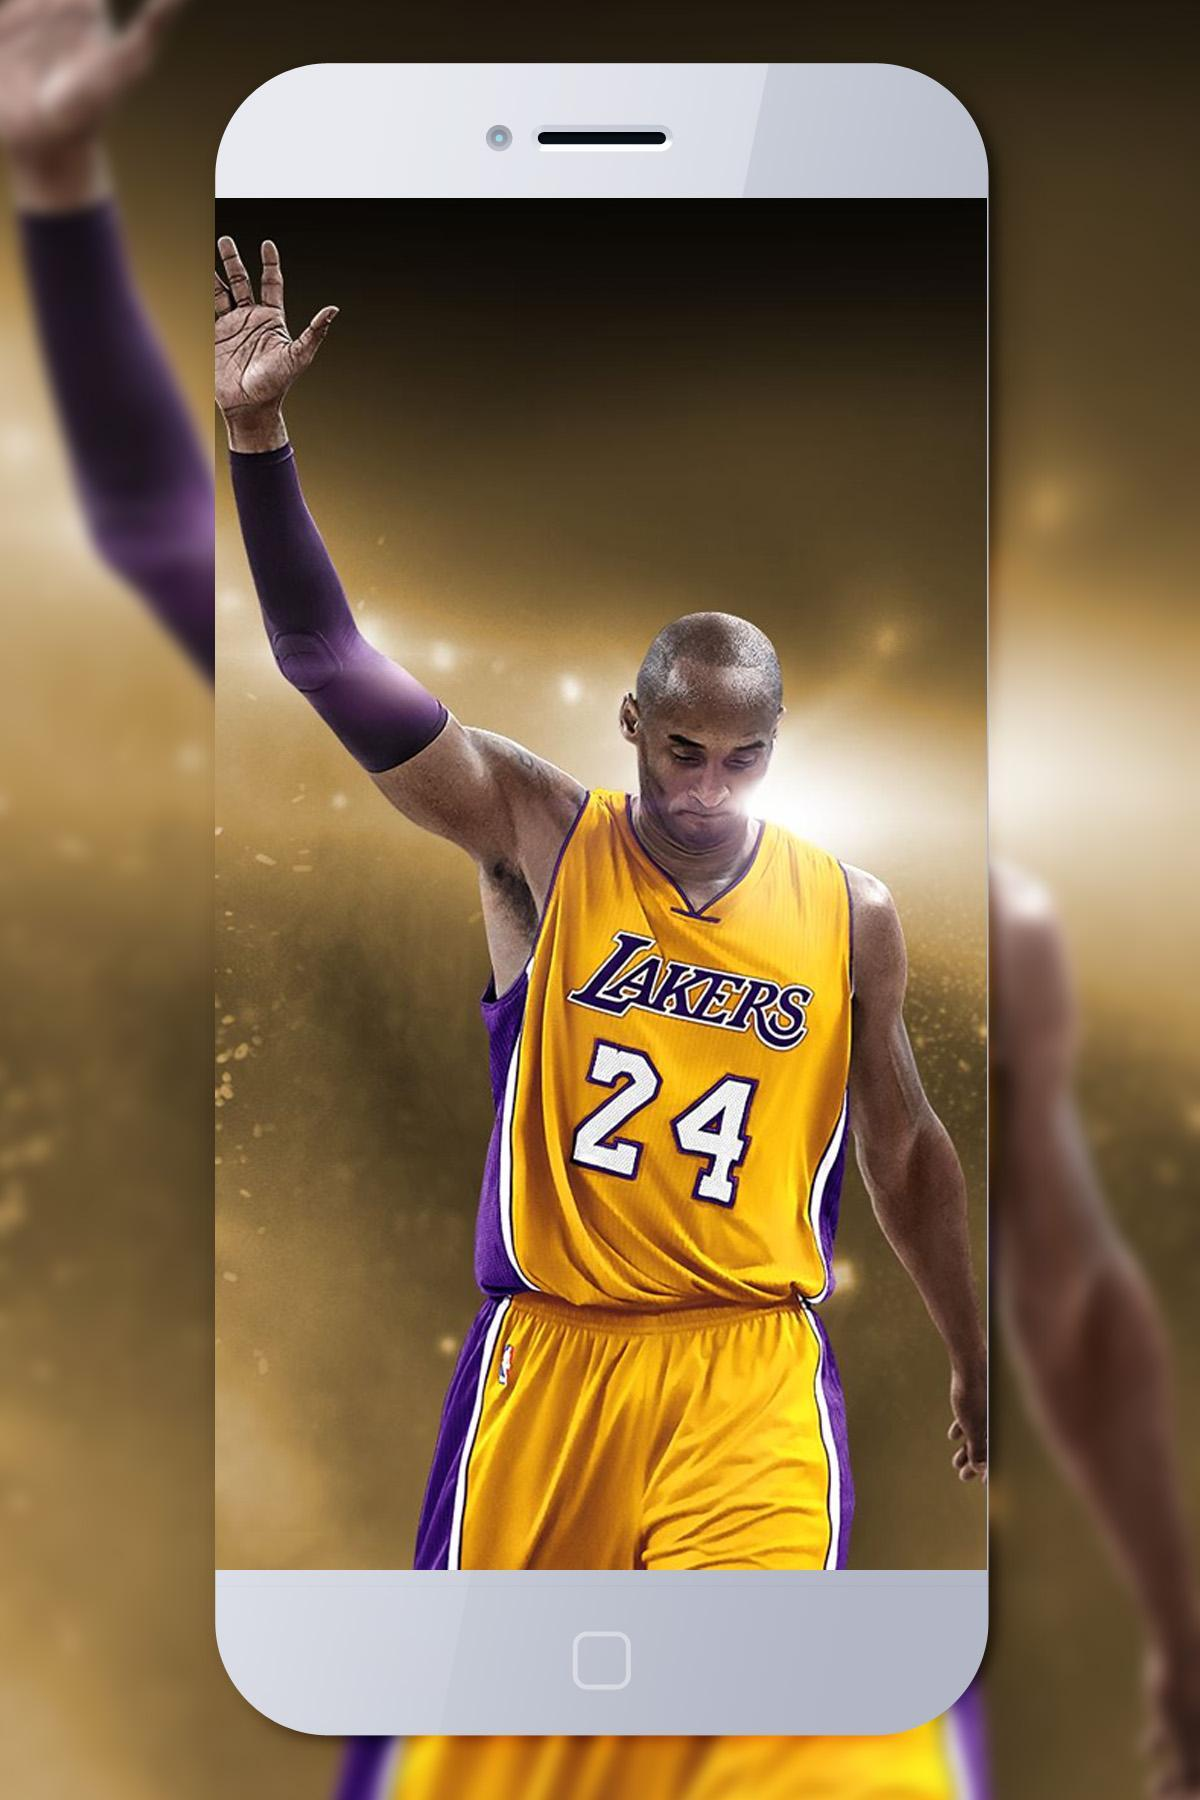 Kobe Bryant Wallpaper For Iphone Posted By John Sellers